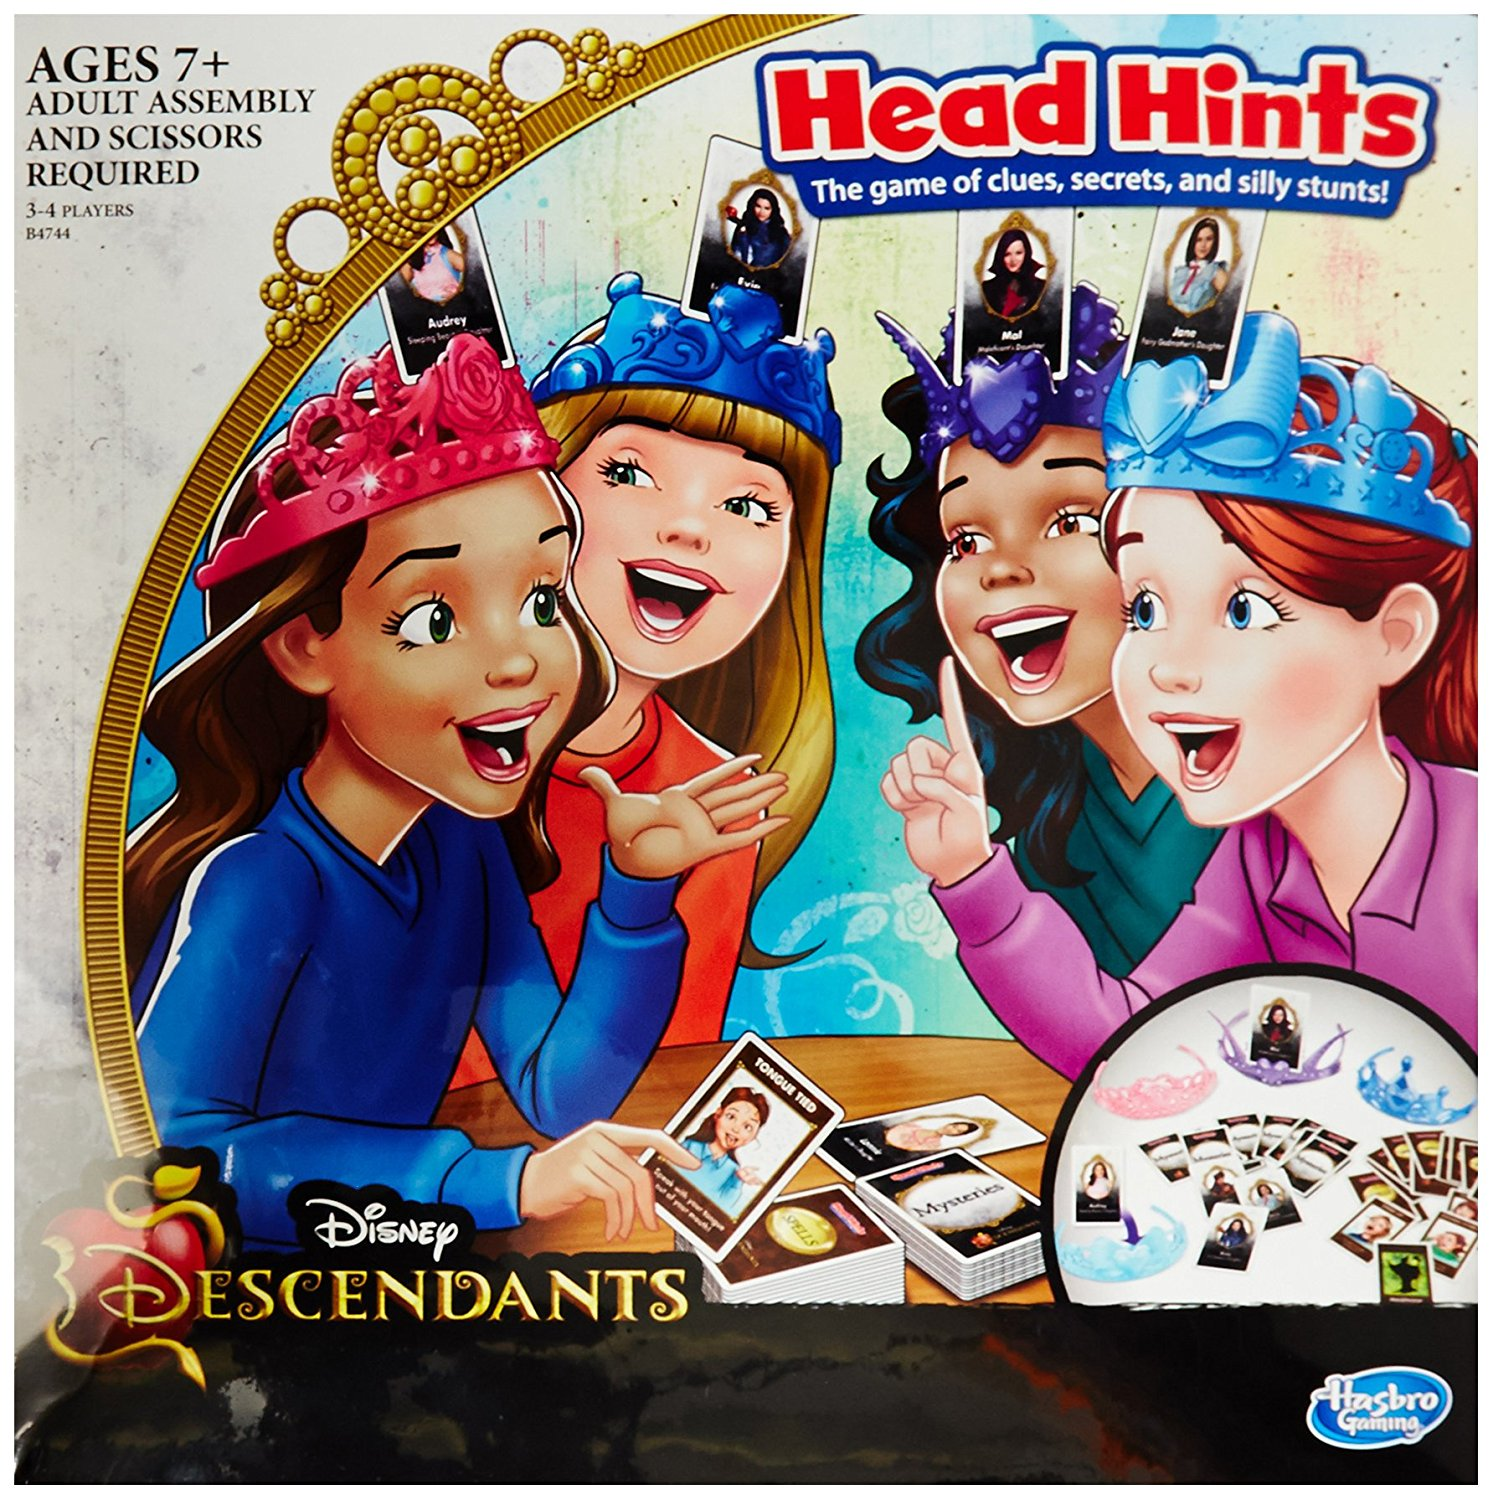 Disney Descendants Head Hints Game..., By Hasbro Ship from US by